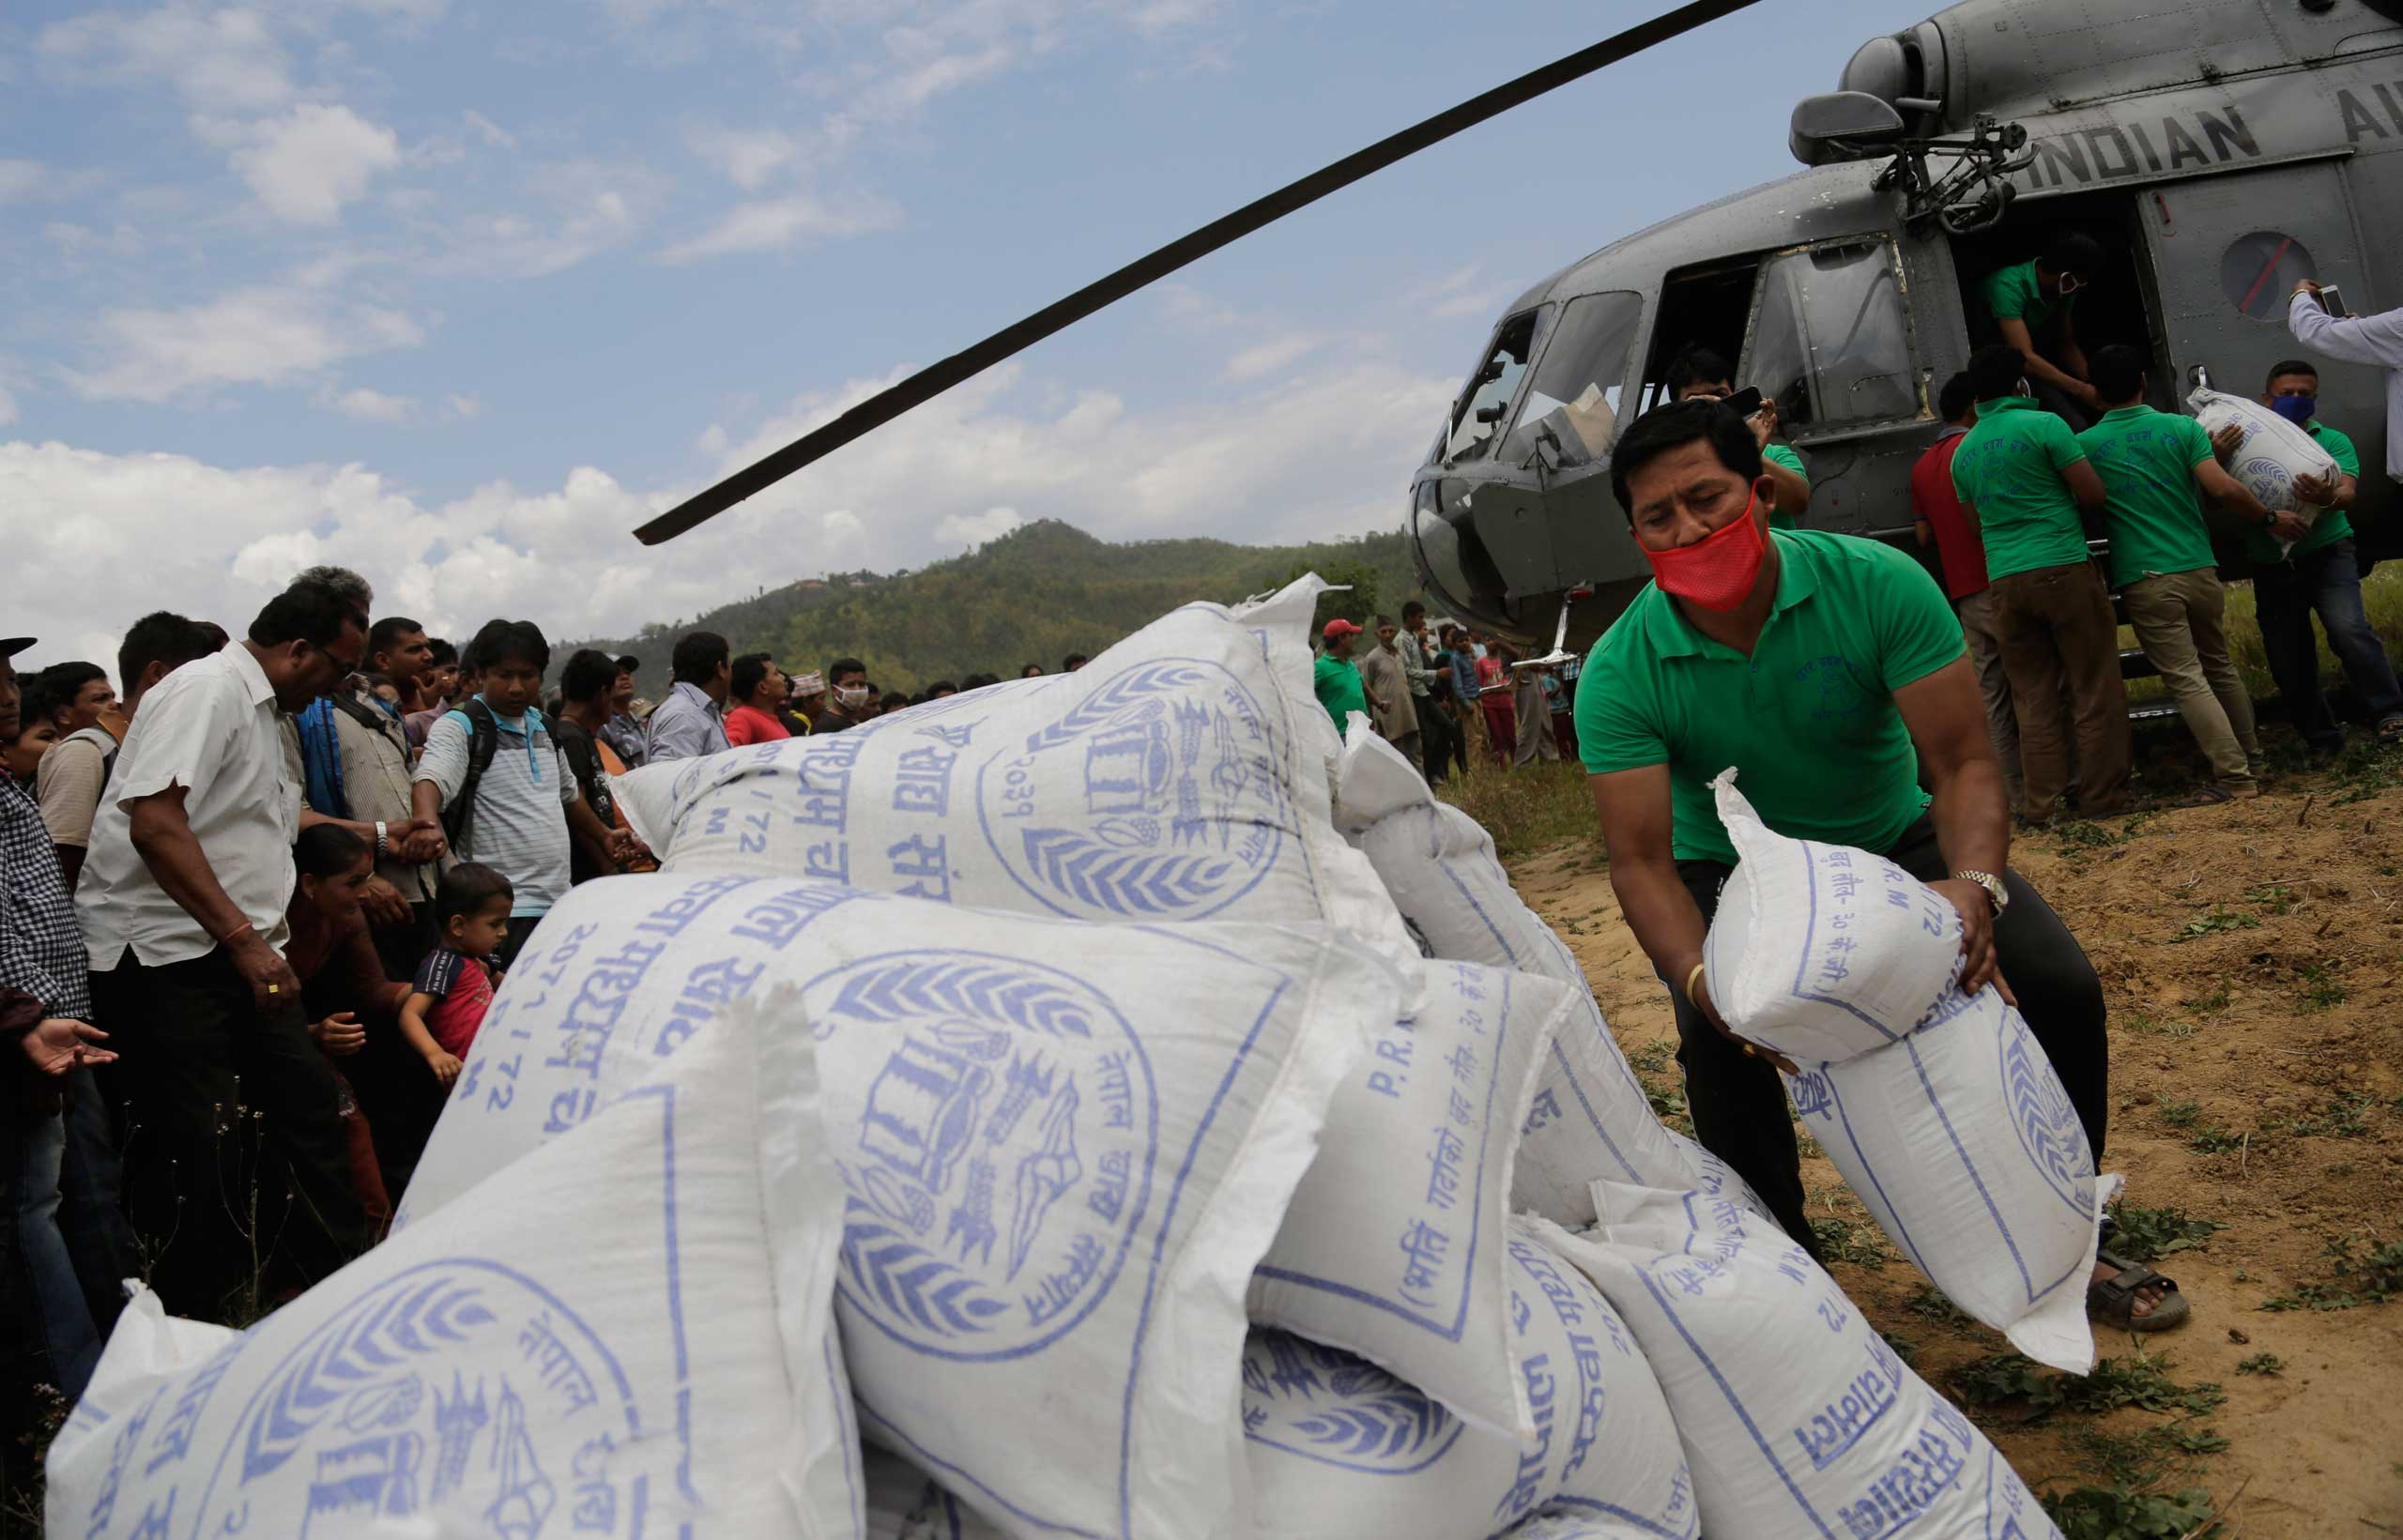 Nepalese volunteers unload relief material, brought by an Indian Air Force helicopter for victims of Saturday's earthquake at Trishuli Bazar in Nepal on April 27, 2015.